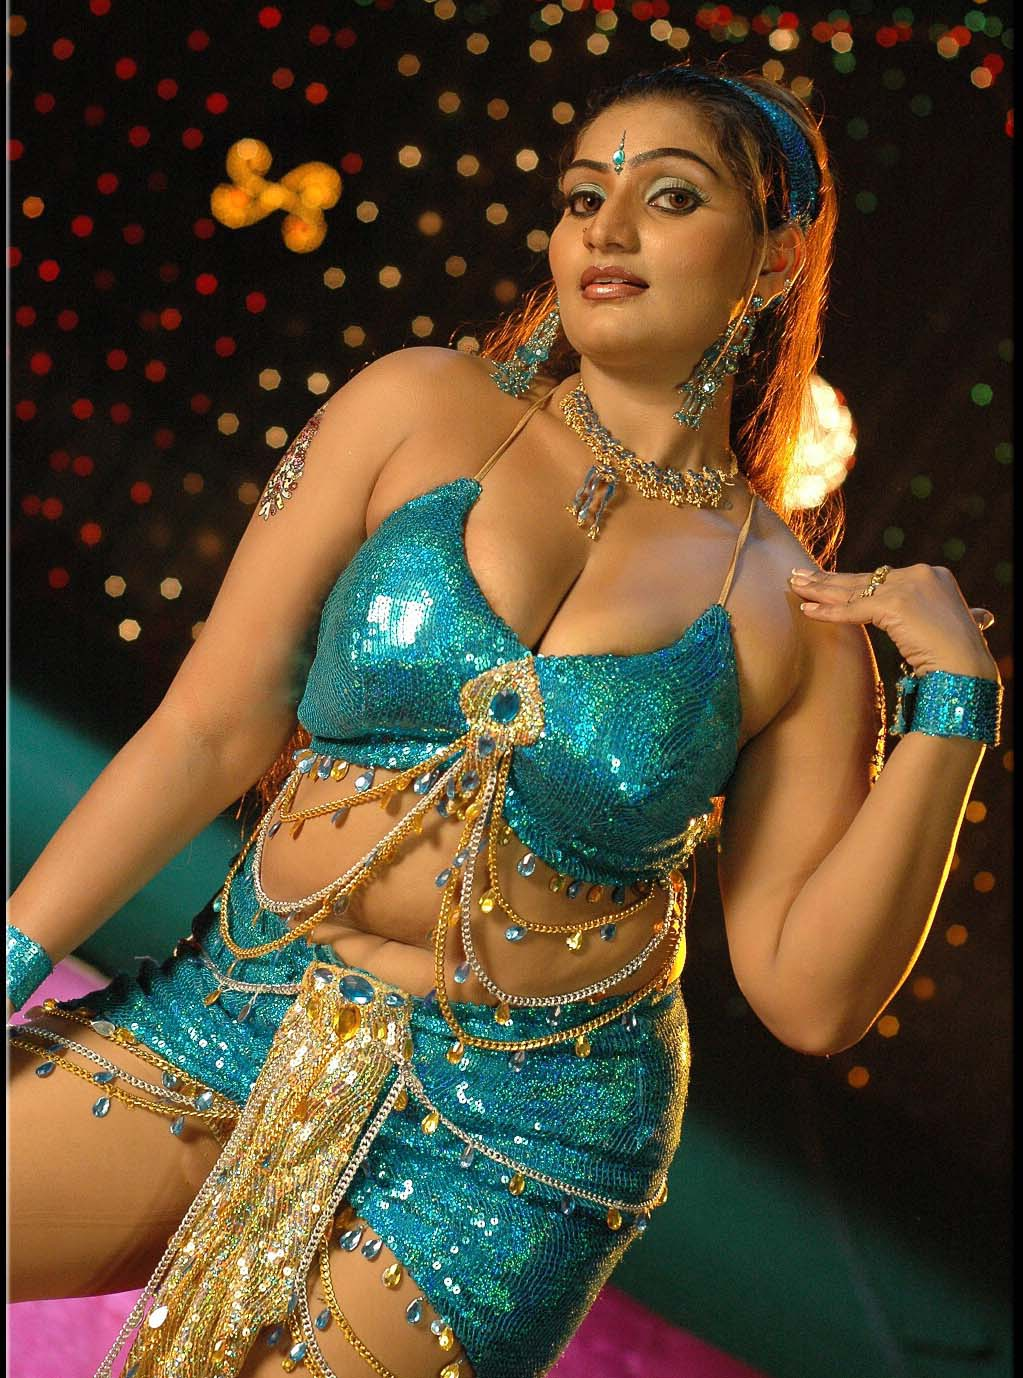 Amma Kodukula Dengulata Telugu Sex Stories